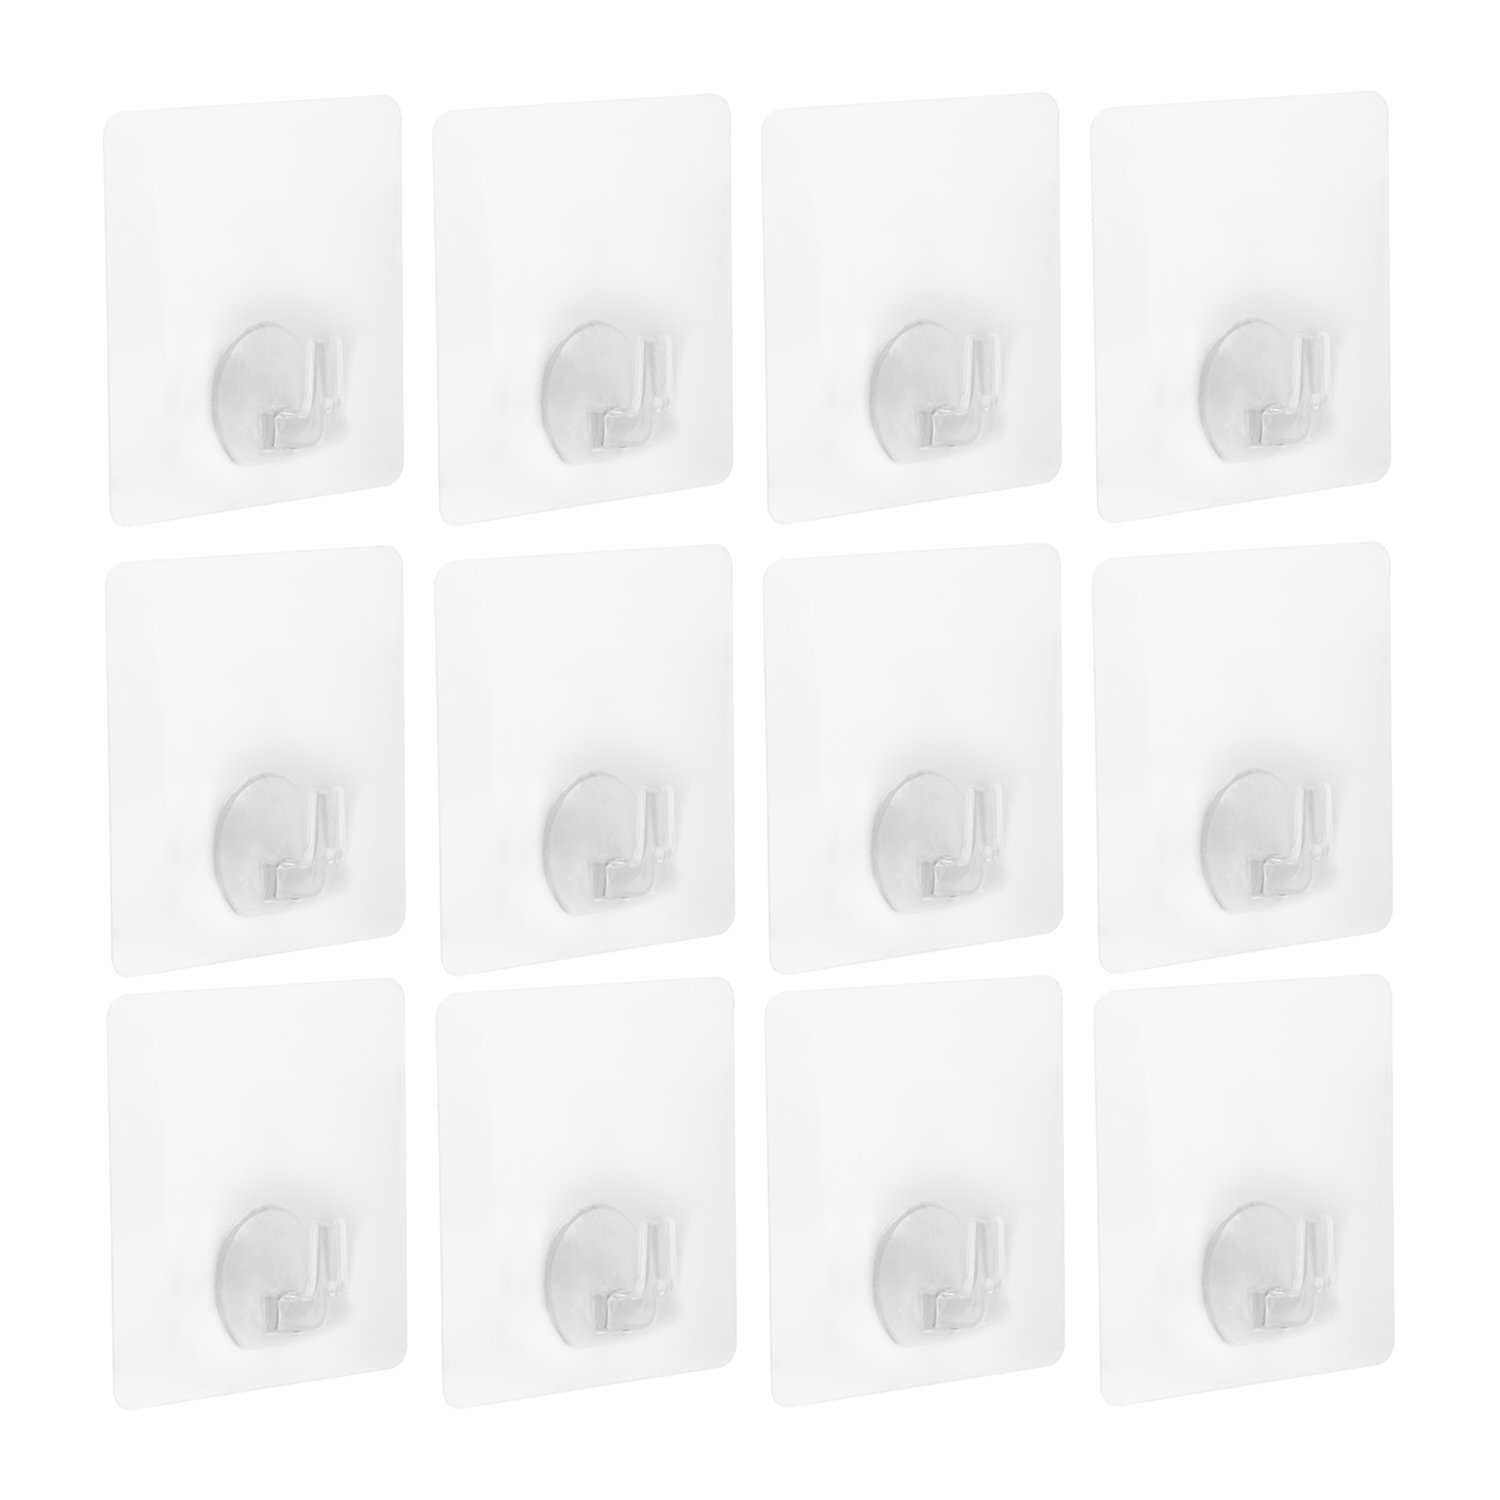 Nail Free Hook Elongdi Transparent Adhesive Hooks 12 Pack No Scratch Wall Hooks Waterproof and Oil proof for Wall and Ceiling